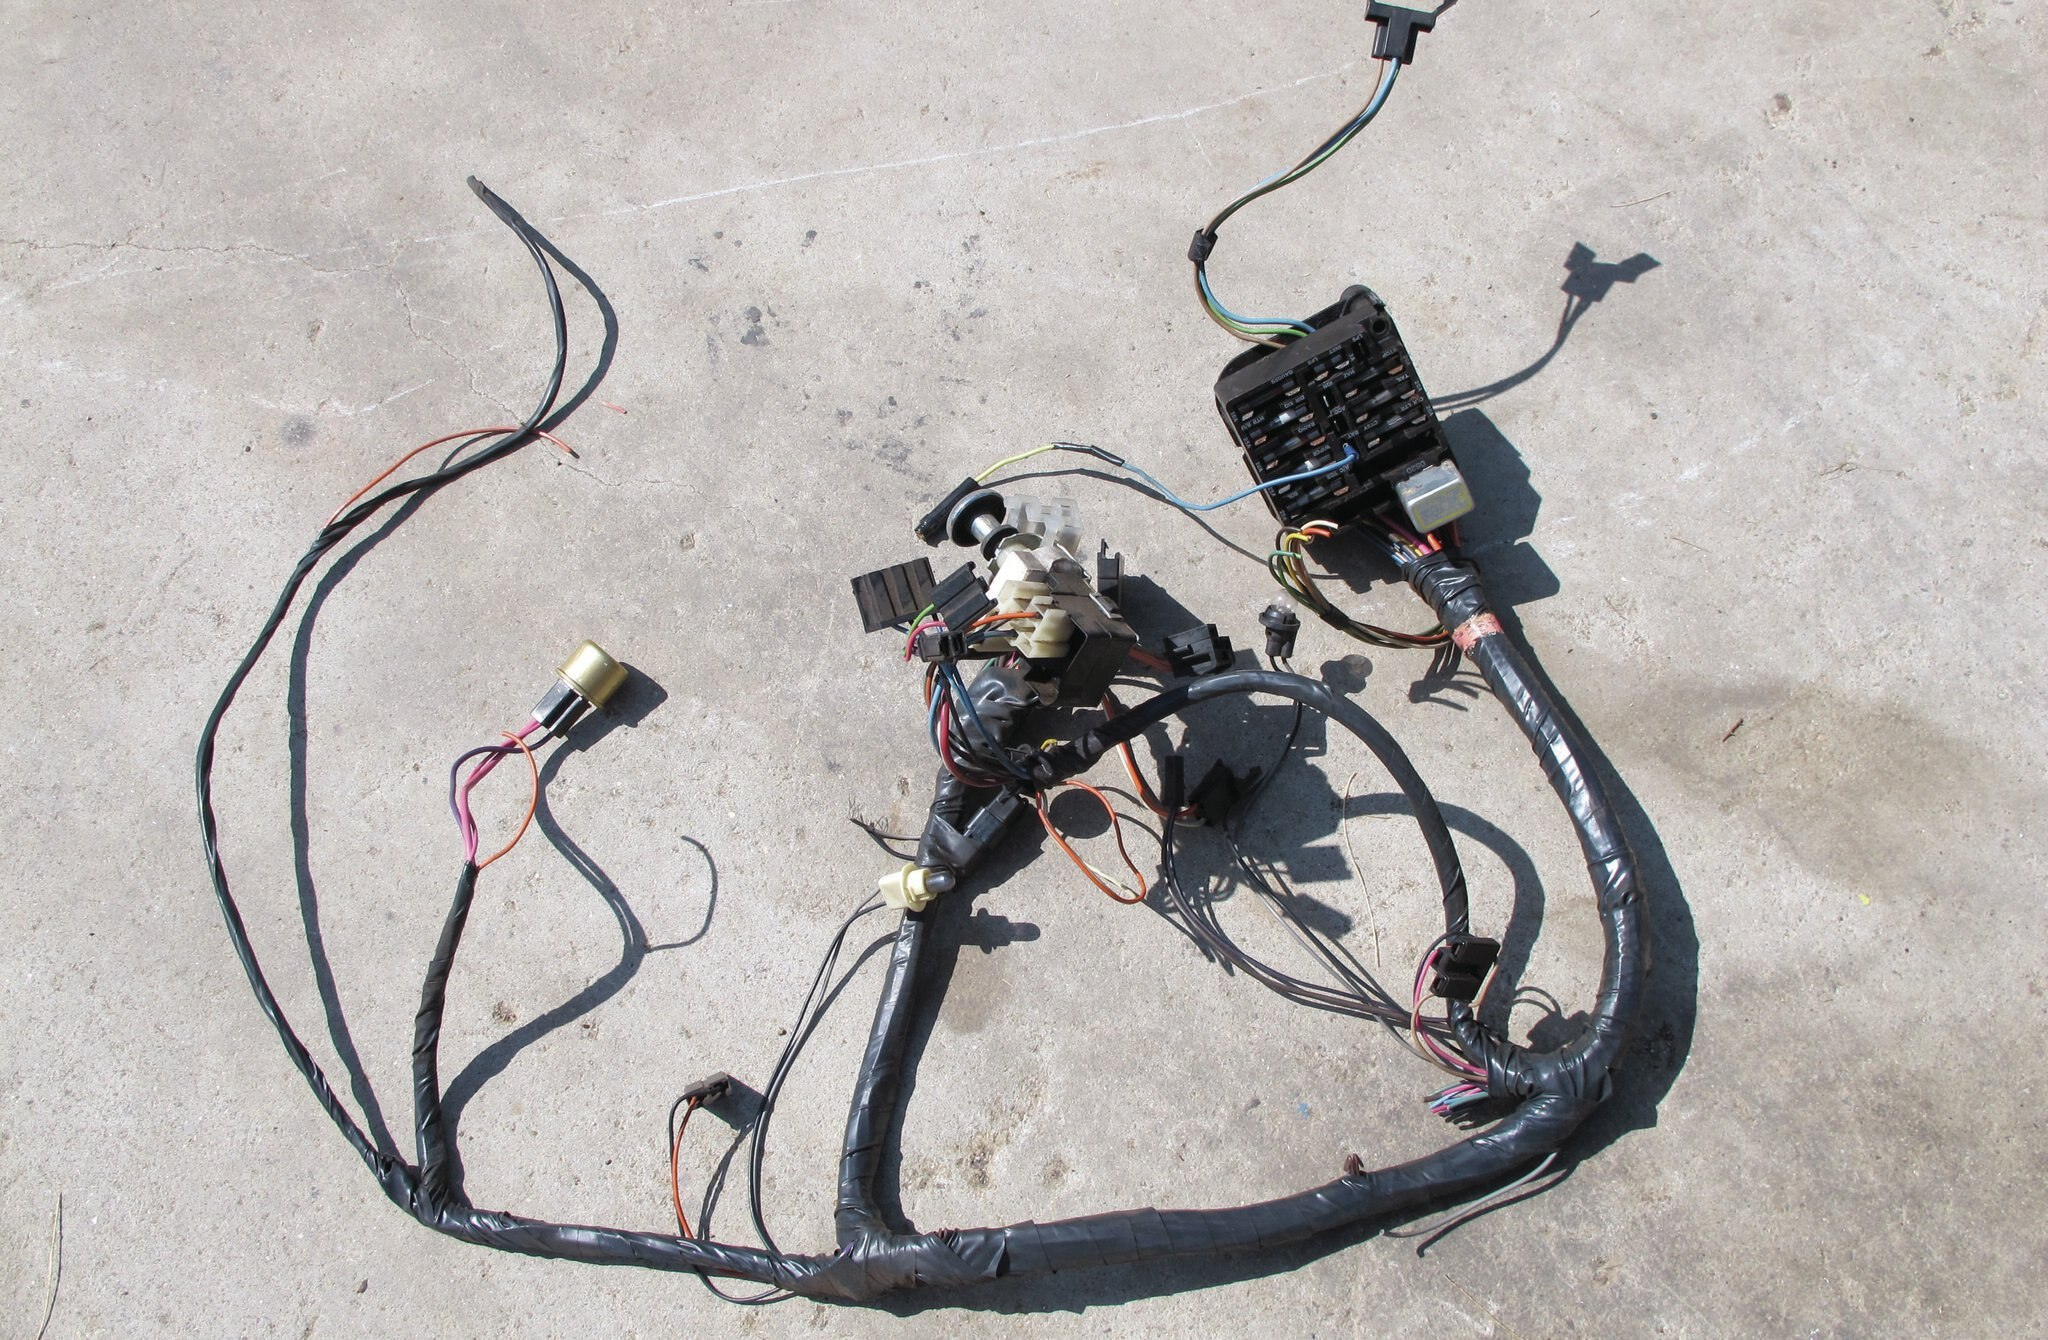 painless wiring dual battery instructions 2003 silverado stereo diagram kit a very quotpainless quot rewire